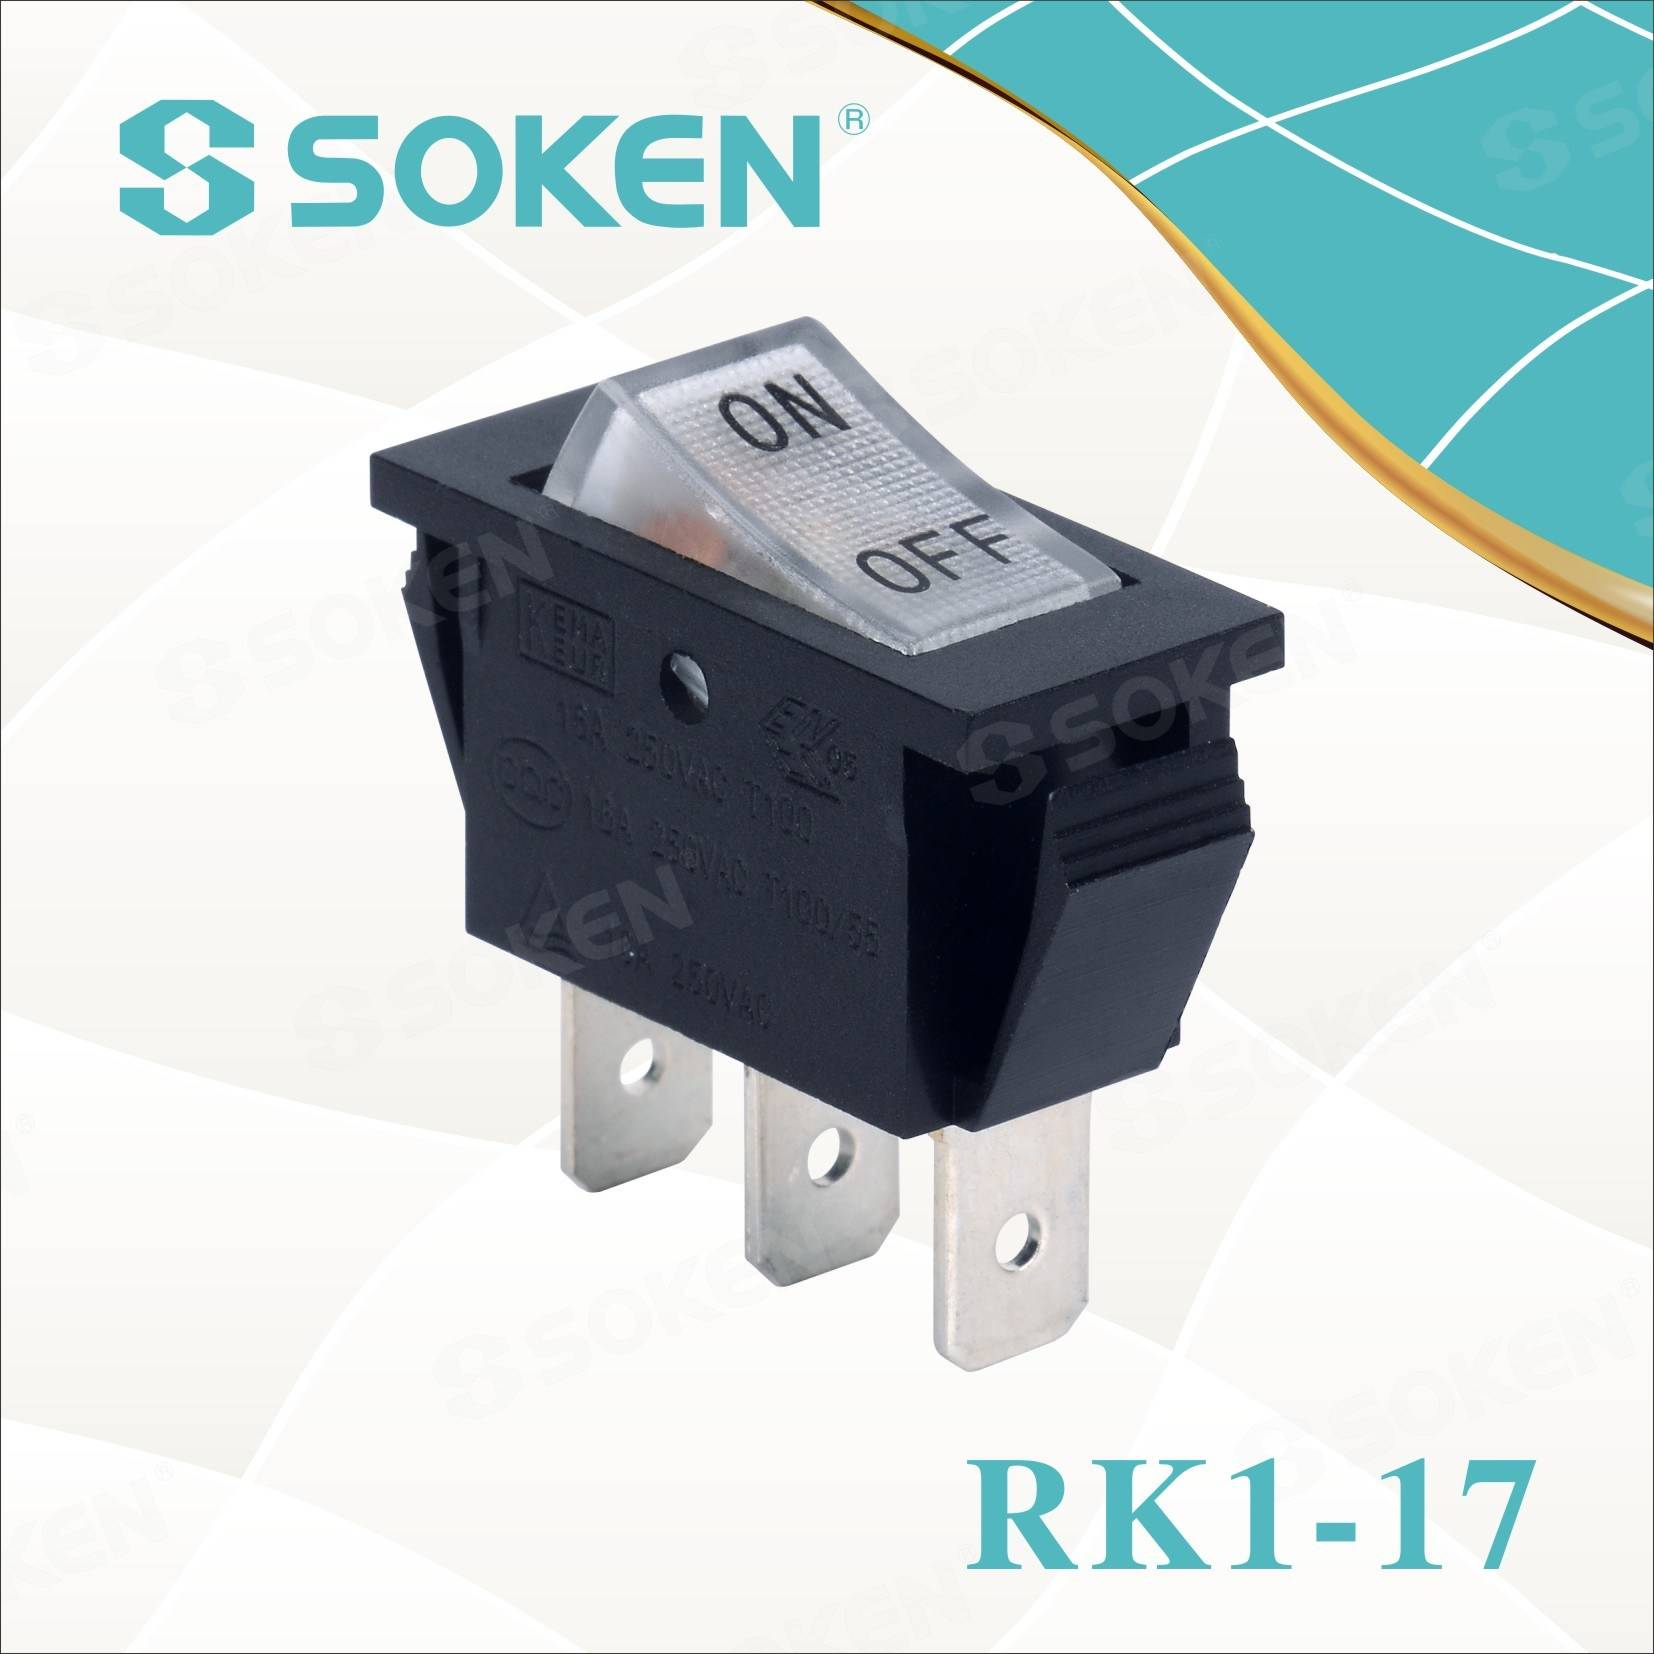 Personlized Products Emergency Light With Sound -